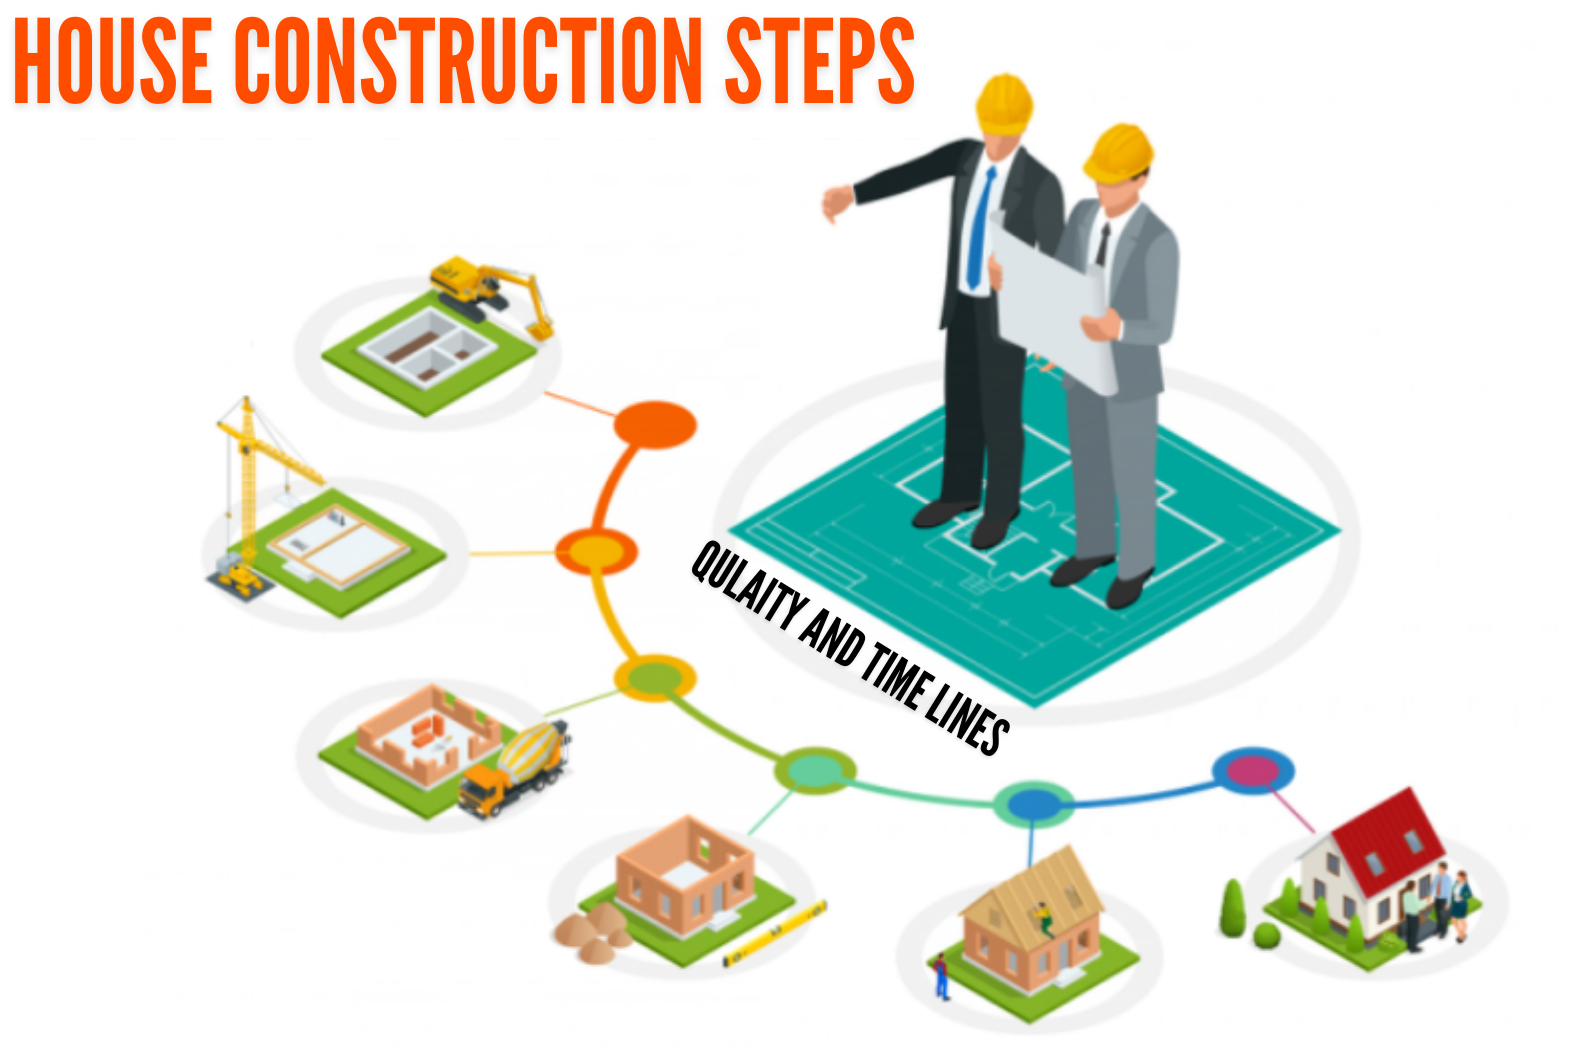 House Construction steps